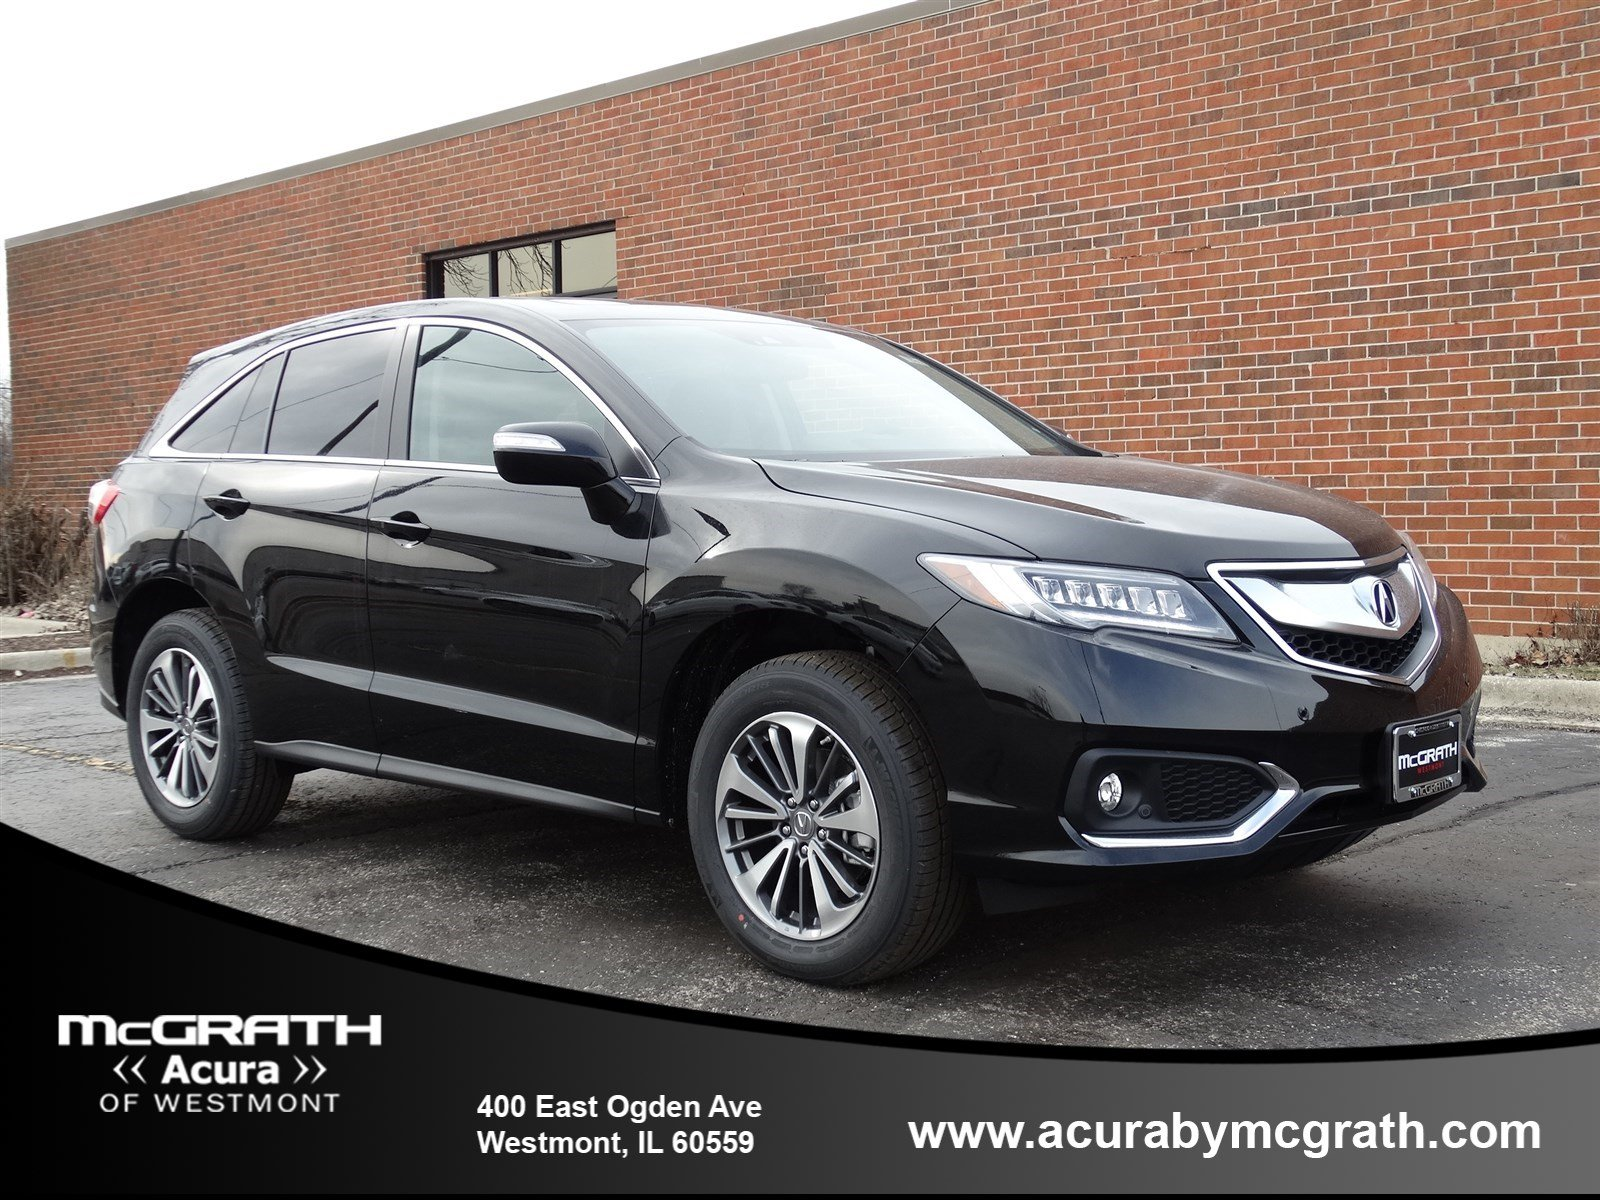 grill review rdx dates carscool acura net specs release photos